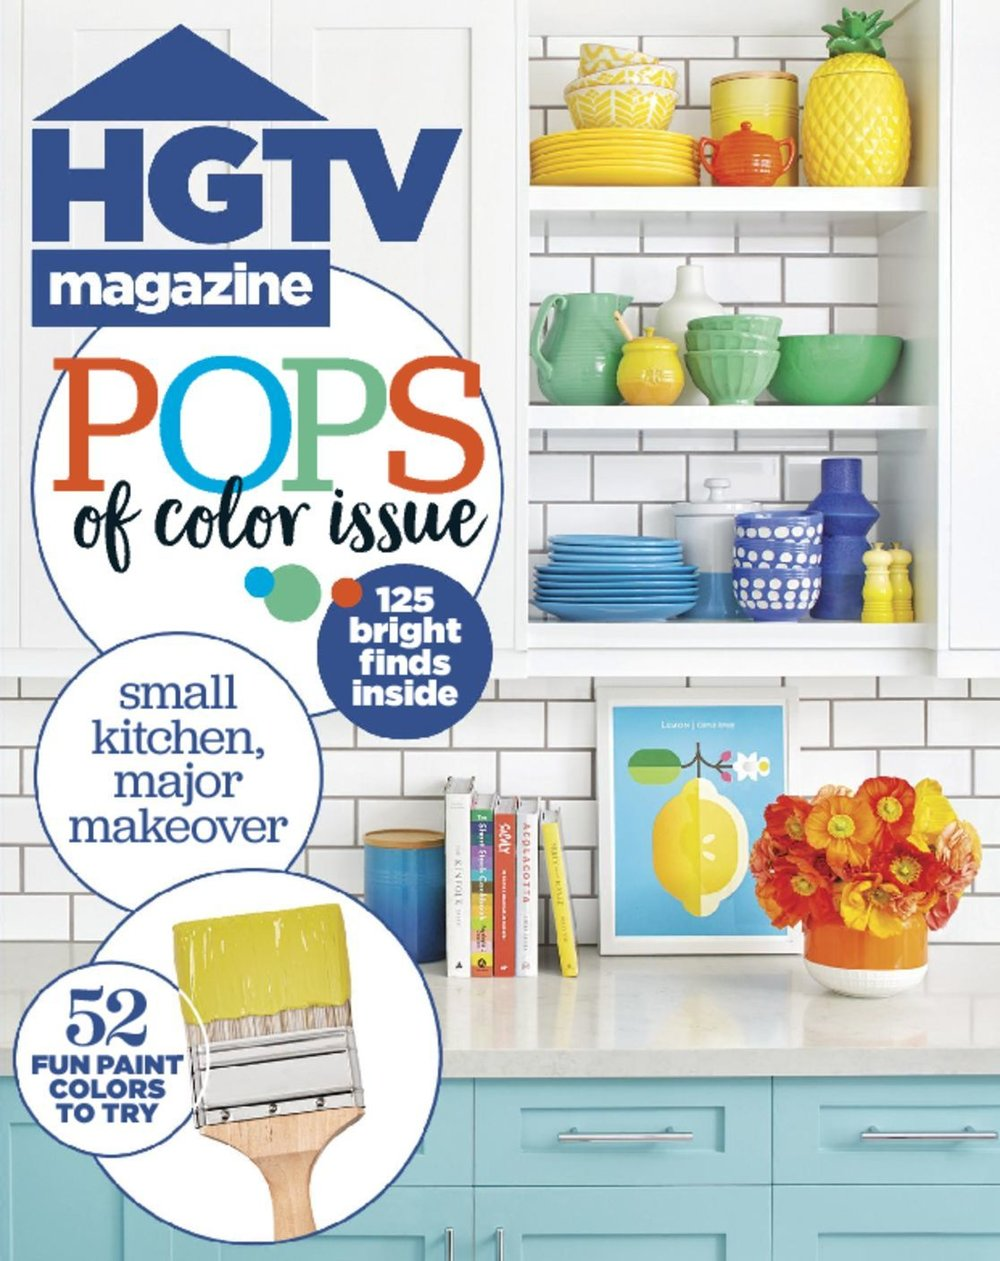 11674-hgtv-Cover-2017-May-1-Issue.jpg